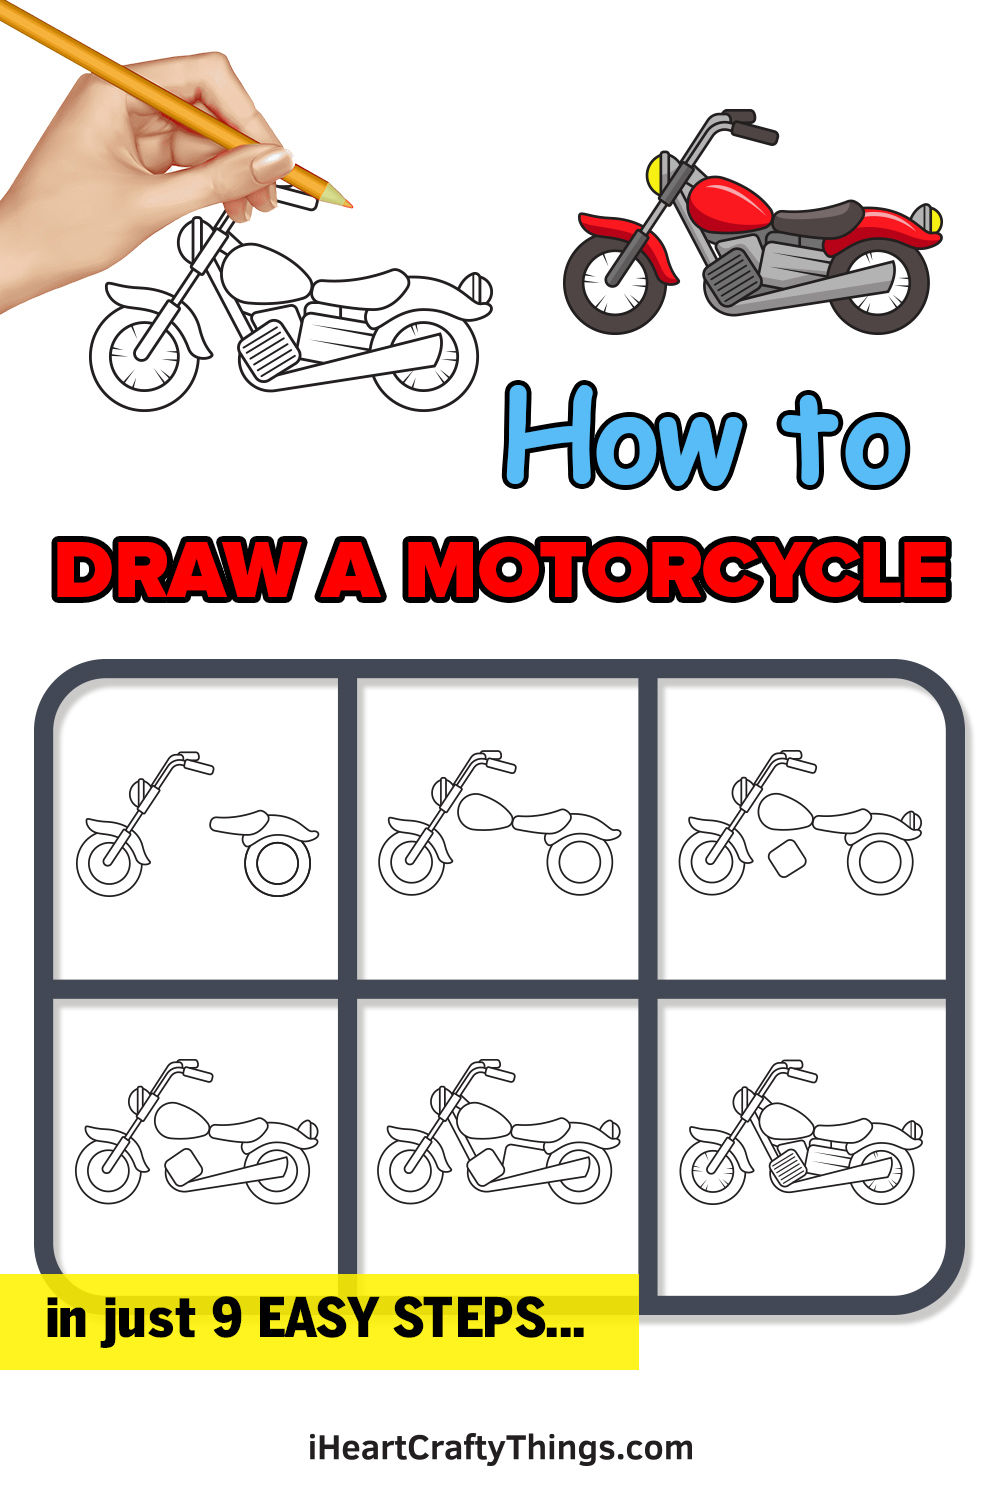 how to draw a motorcycle in 9 easy steps